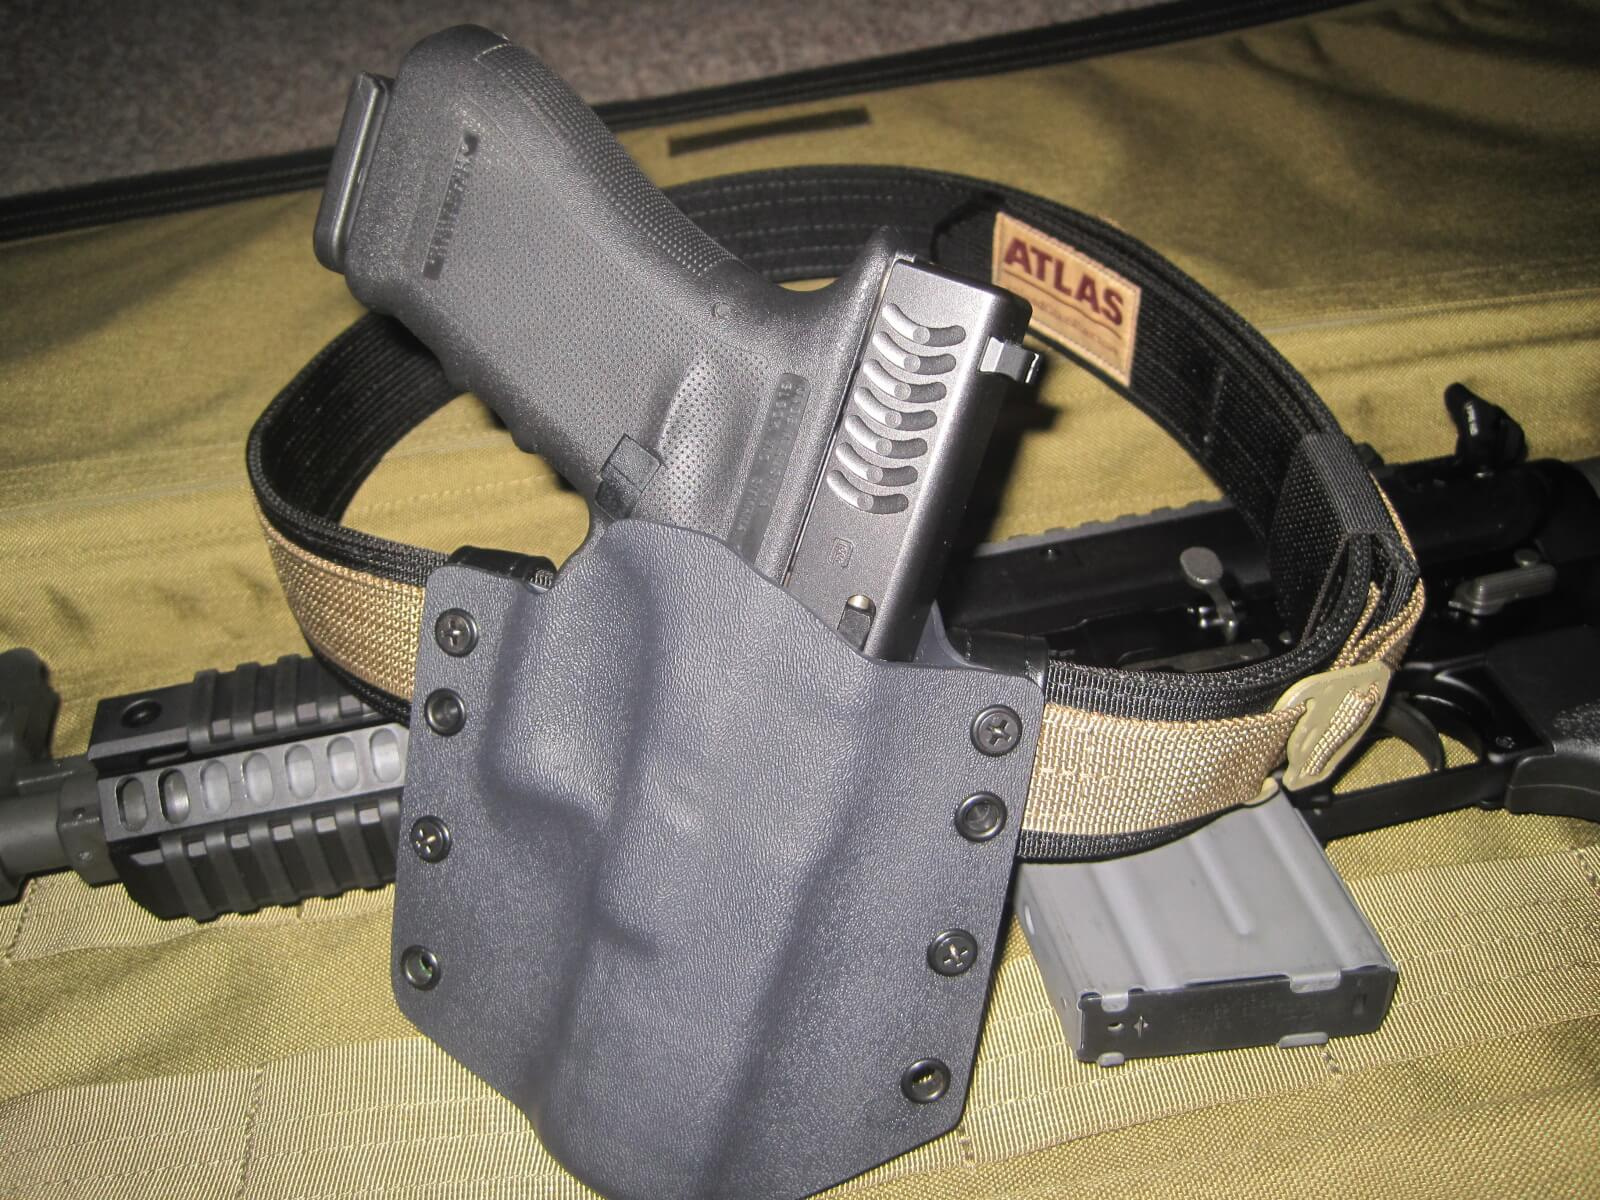 ATLAS Belt w/Dark Star Gear Holster